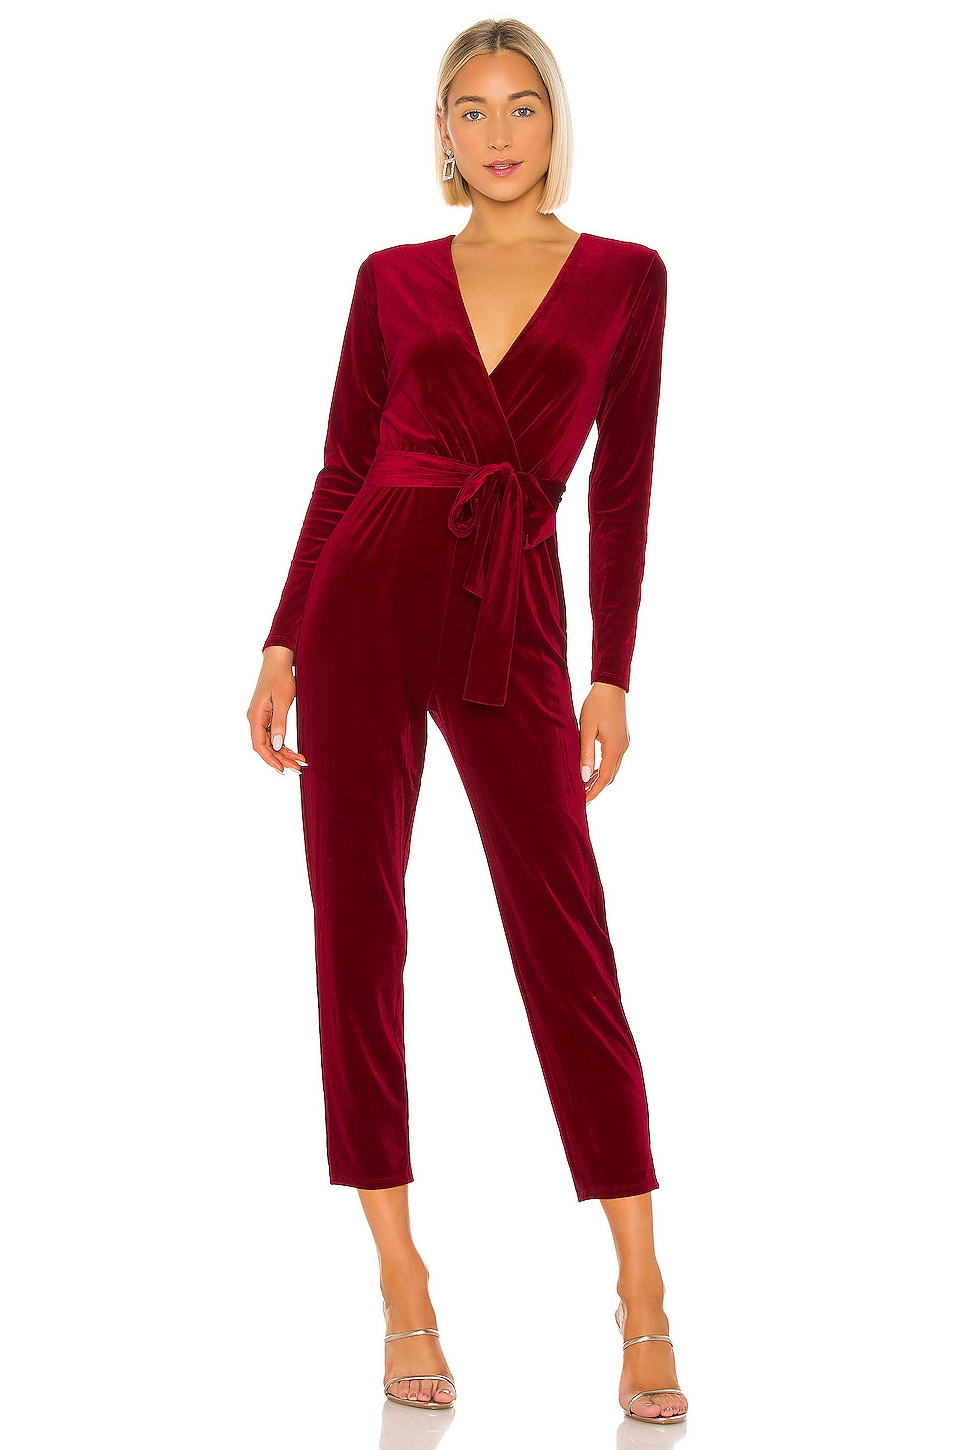 Lovers + Friends Hart Jumpsuit in Ruby Red